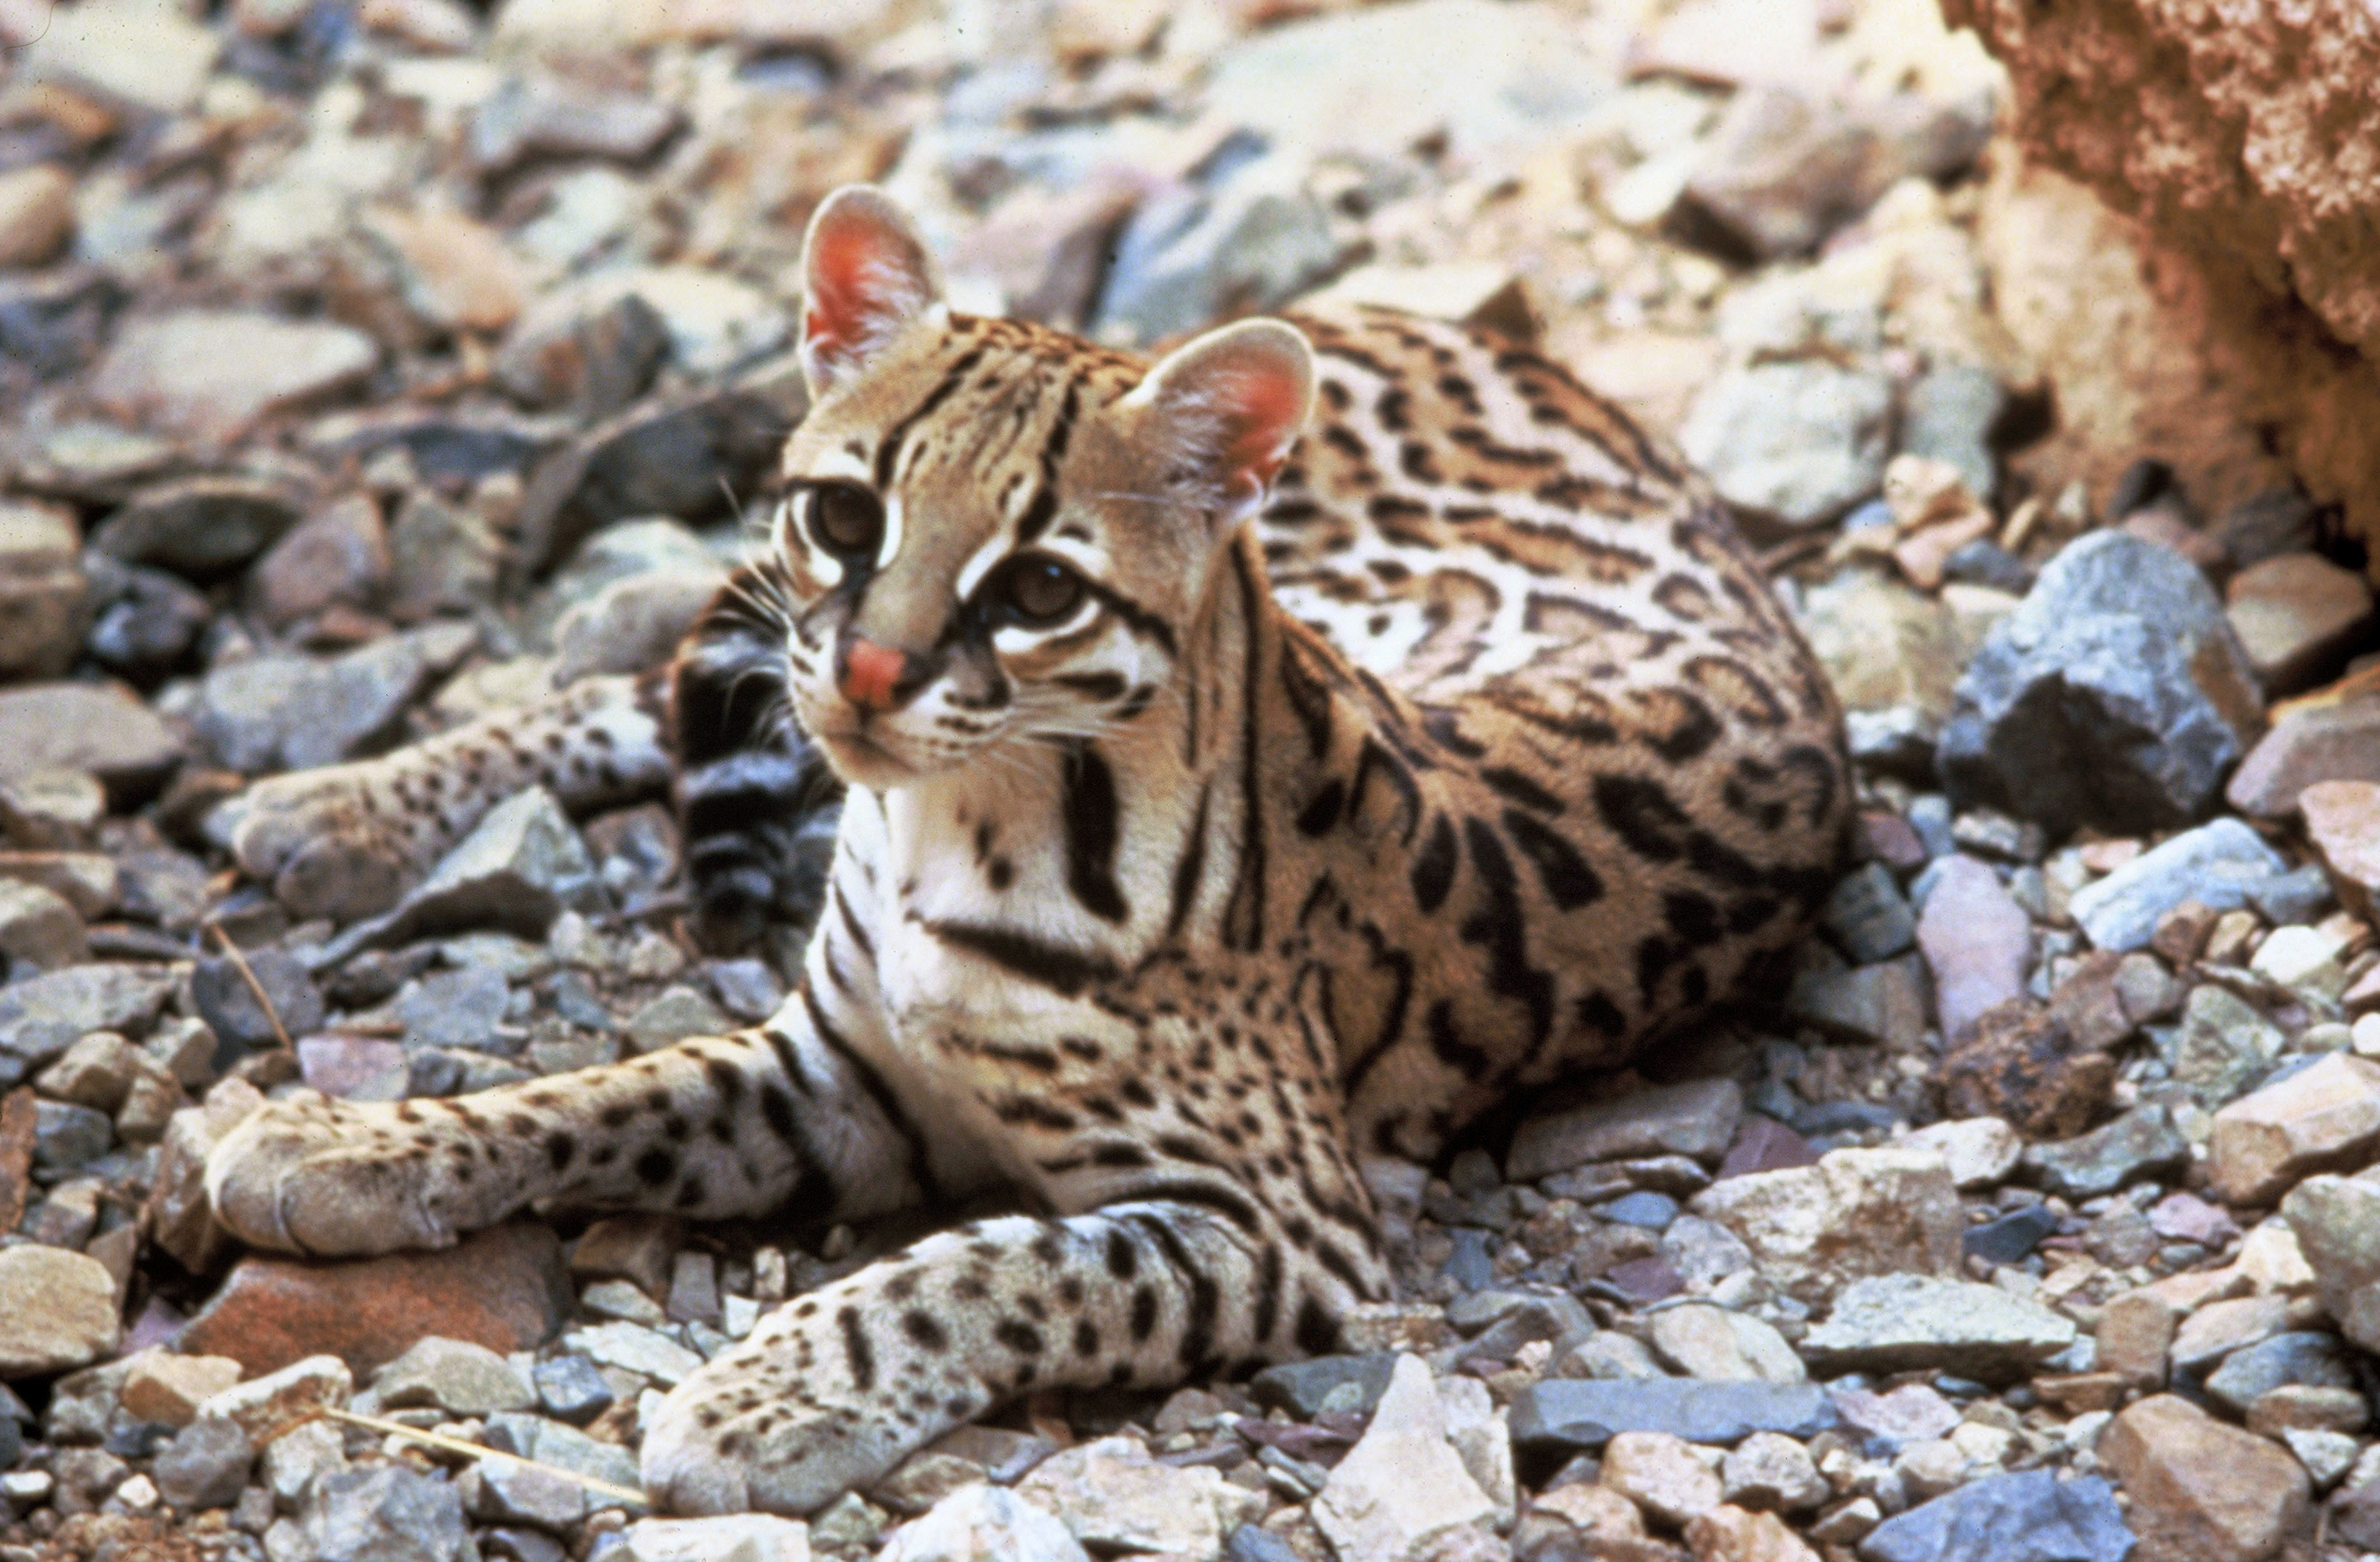 http://upload.wikimedia.org/wikipedia/commons/2/28/Ocelot.jpg